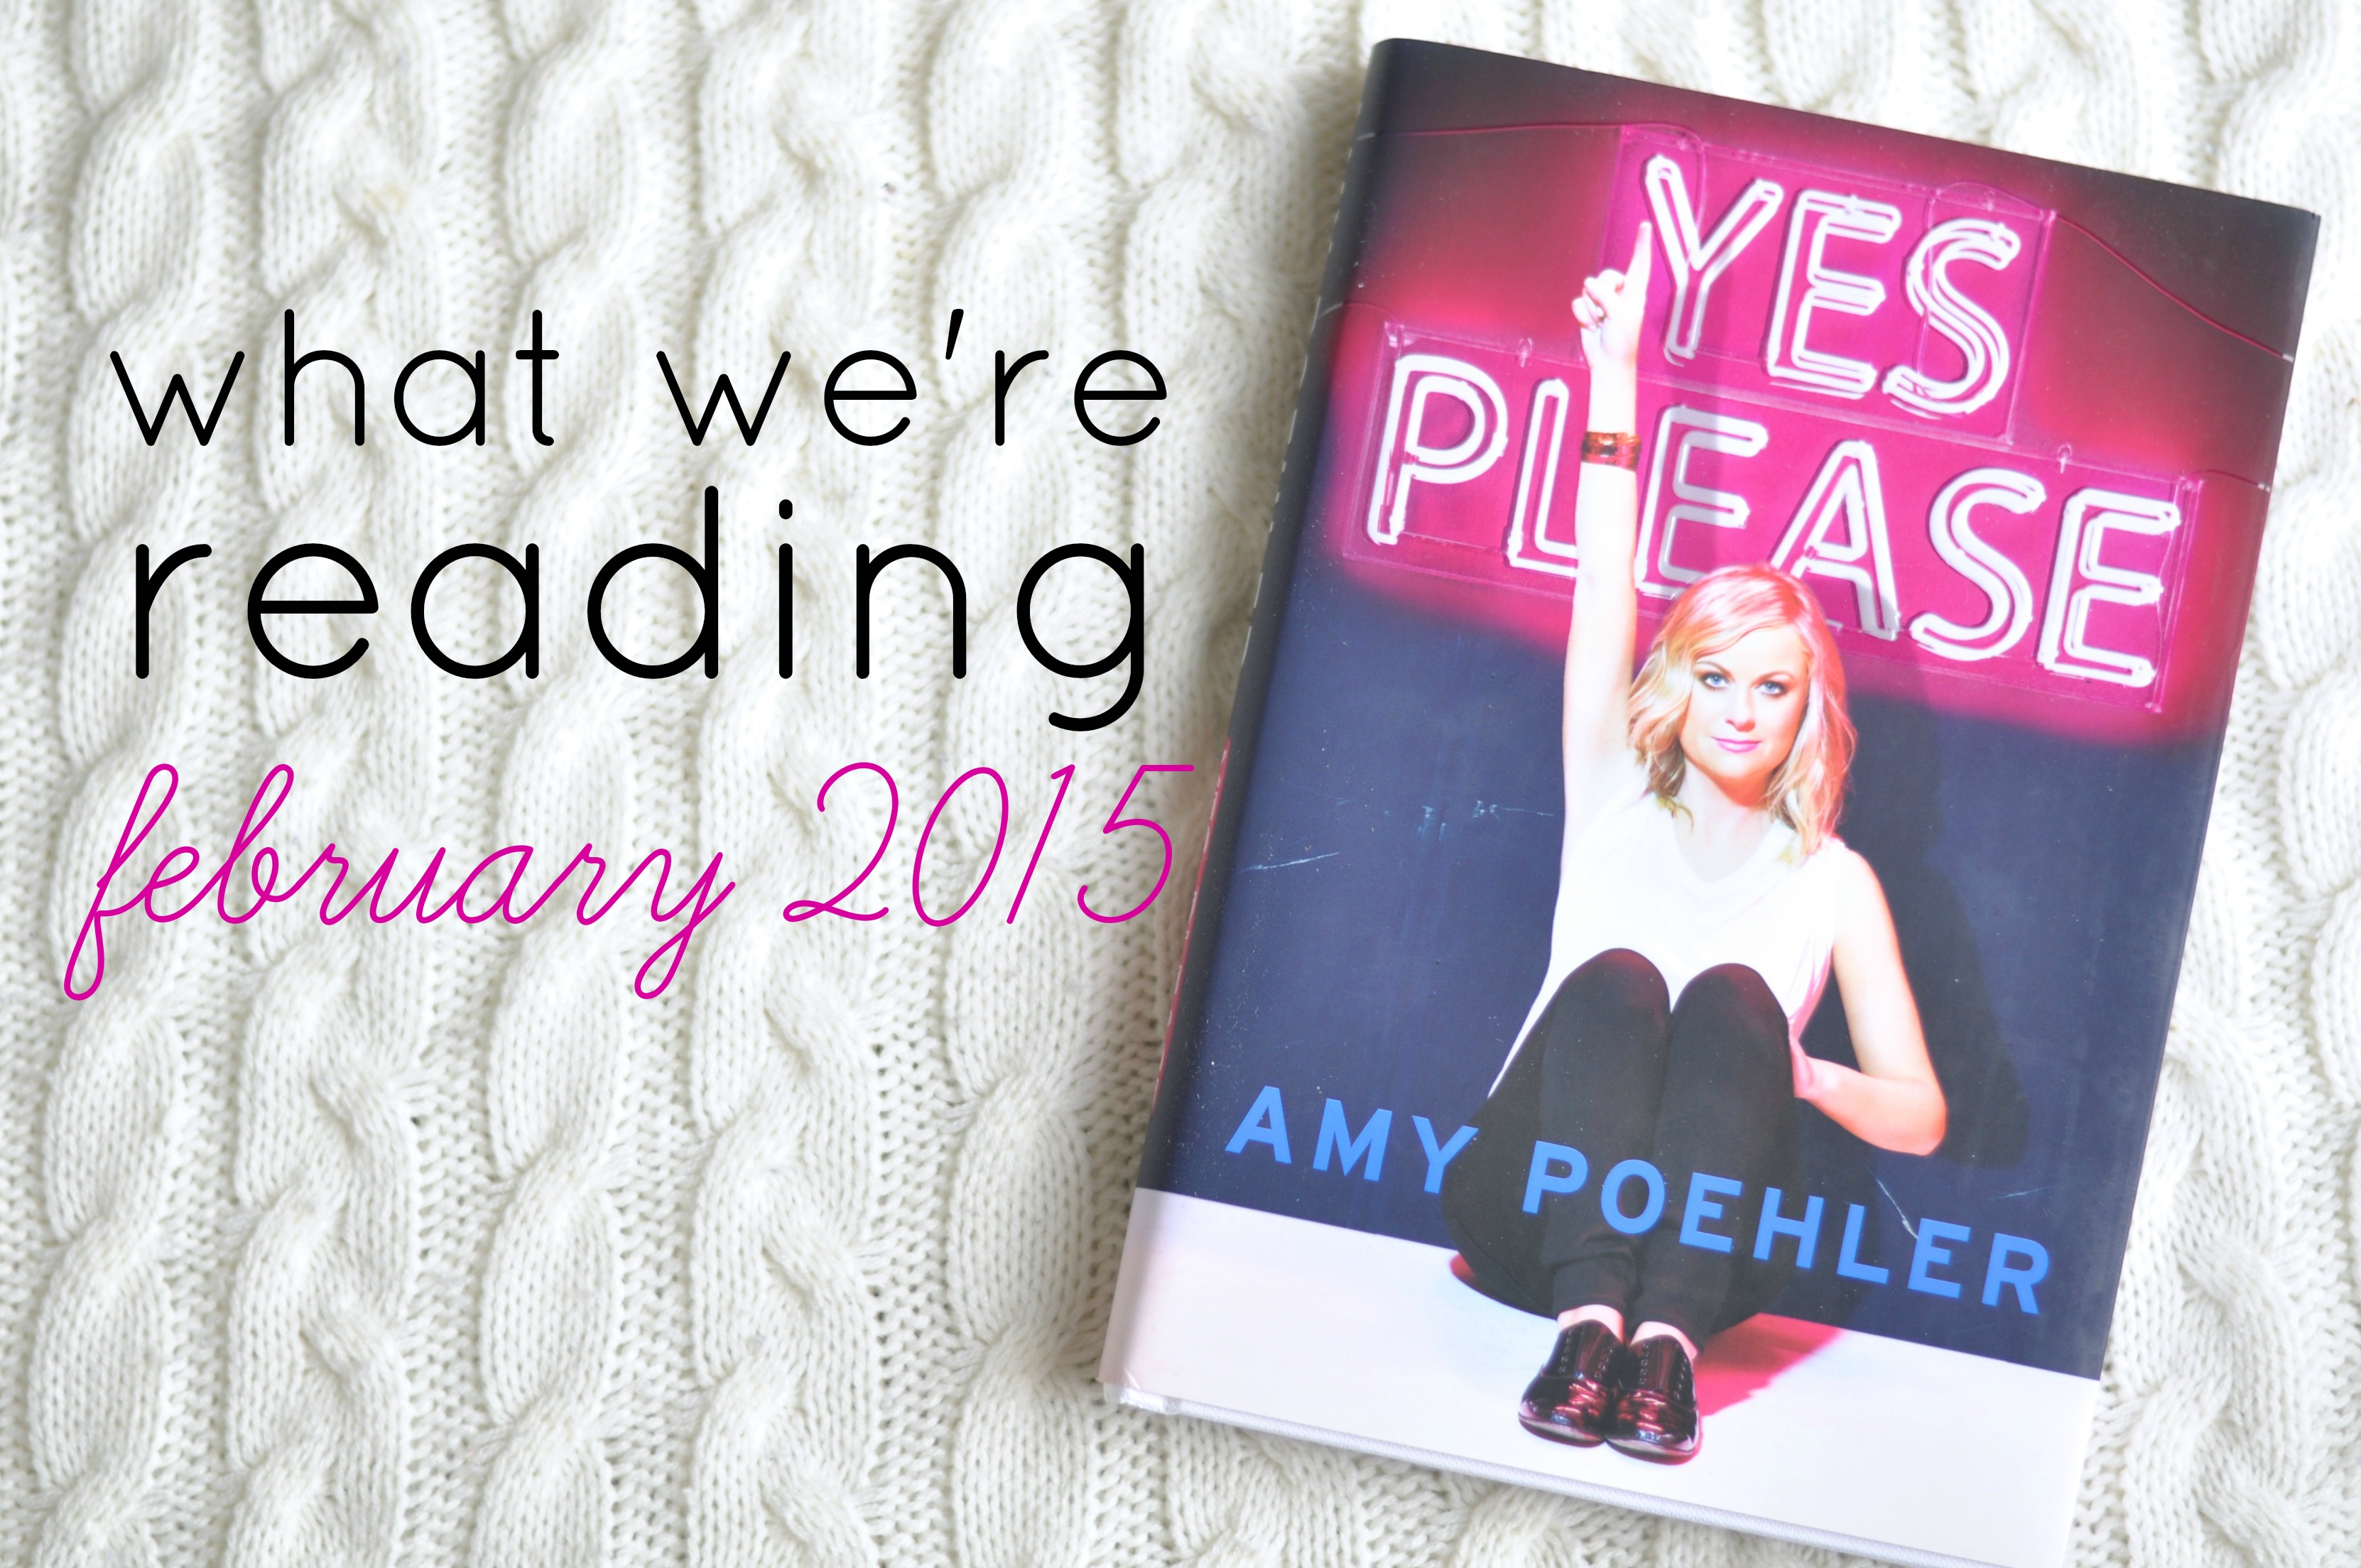 what-we're-reading-february-2015